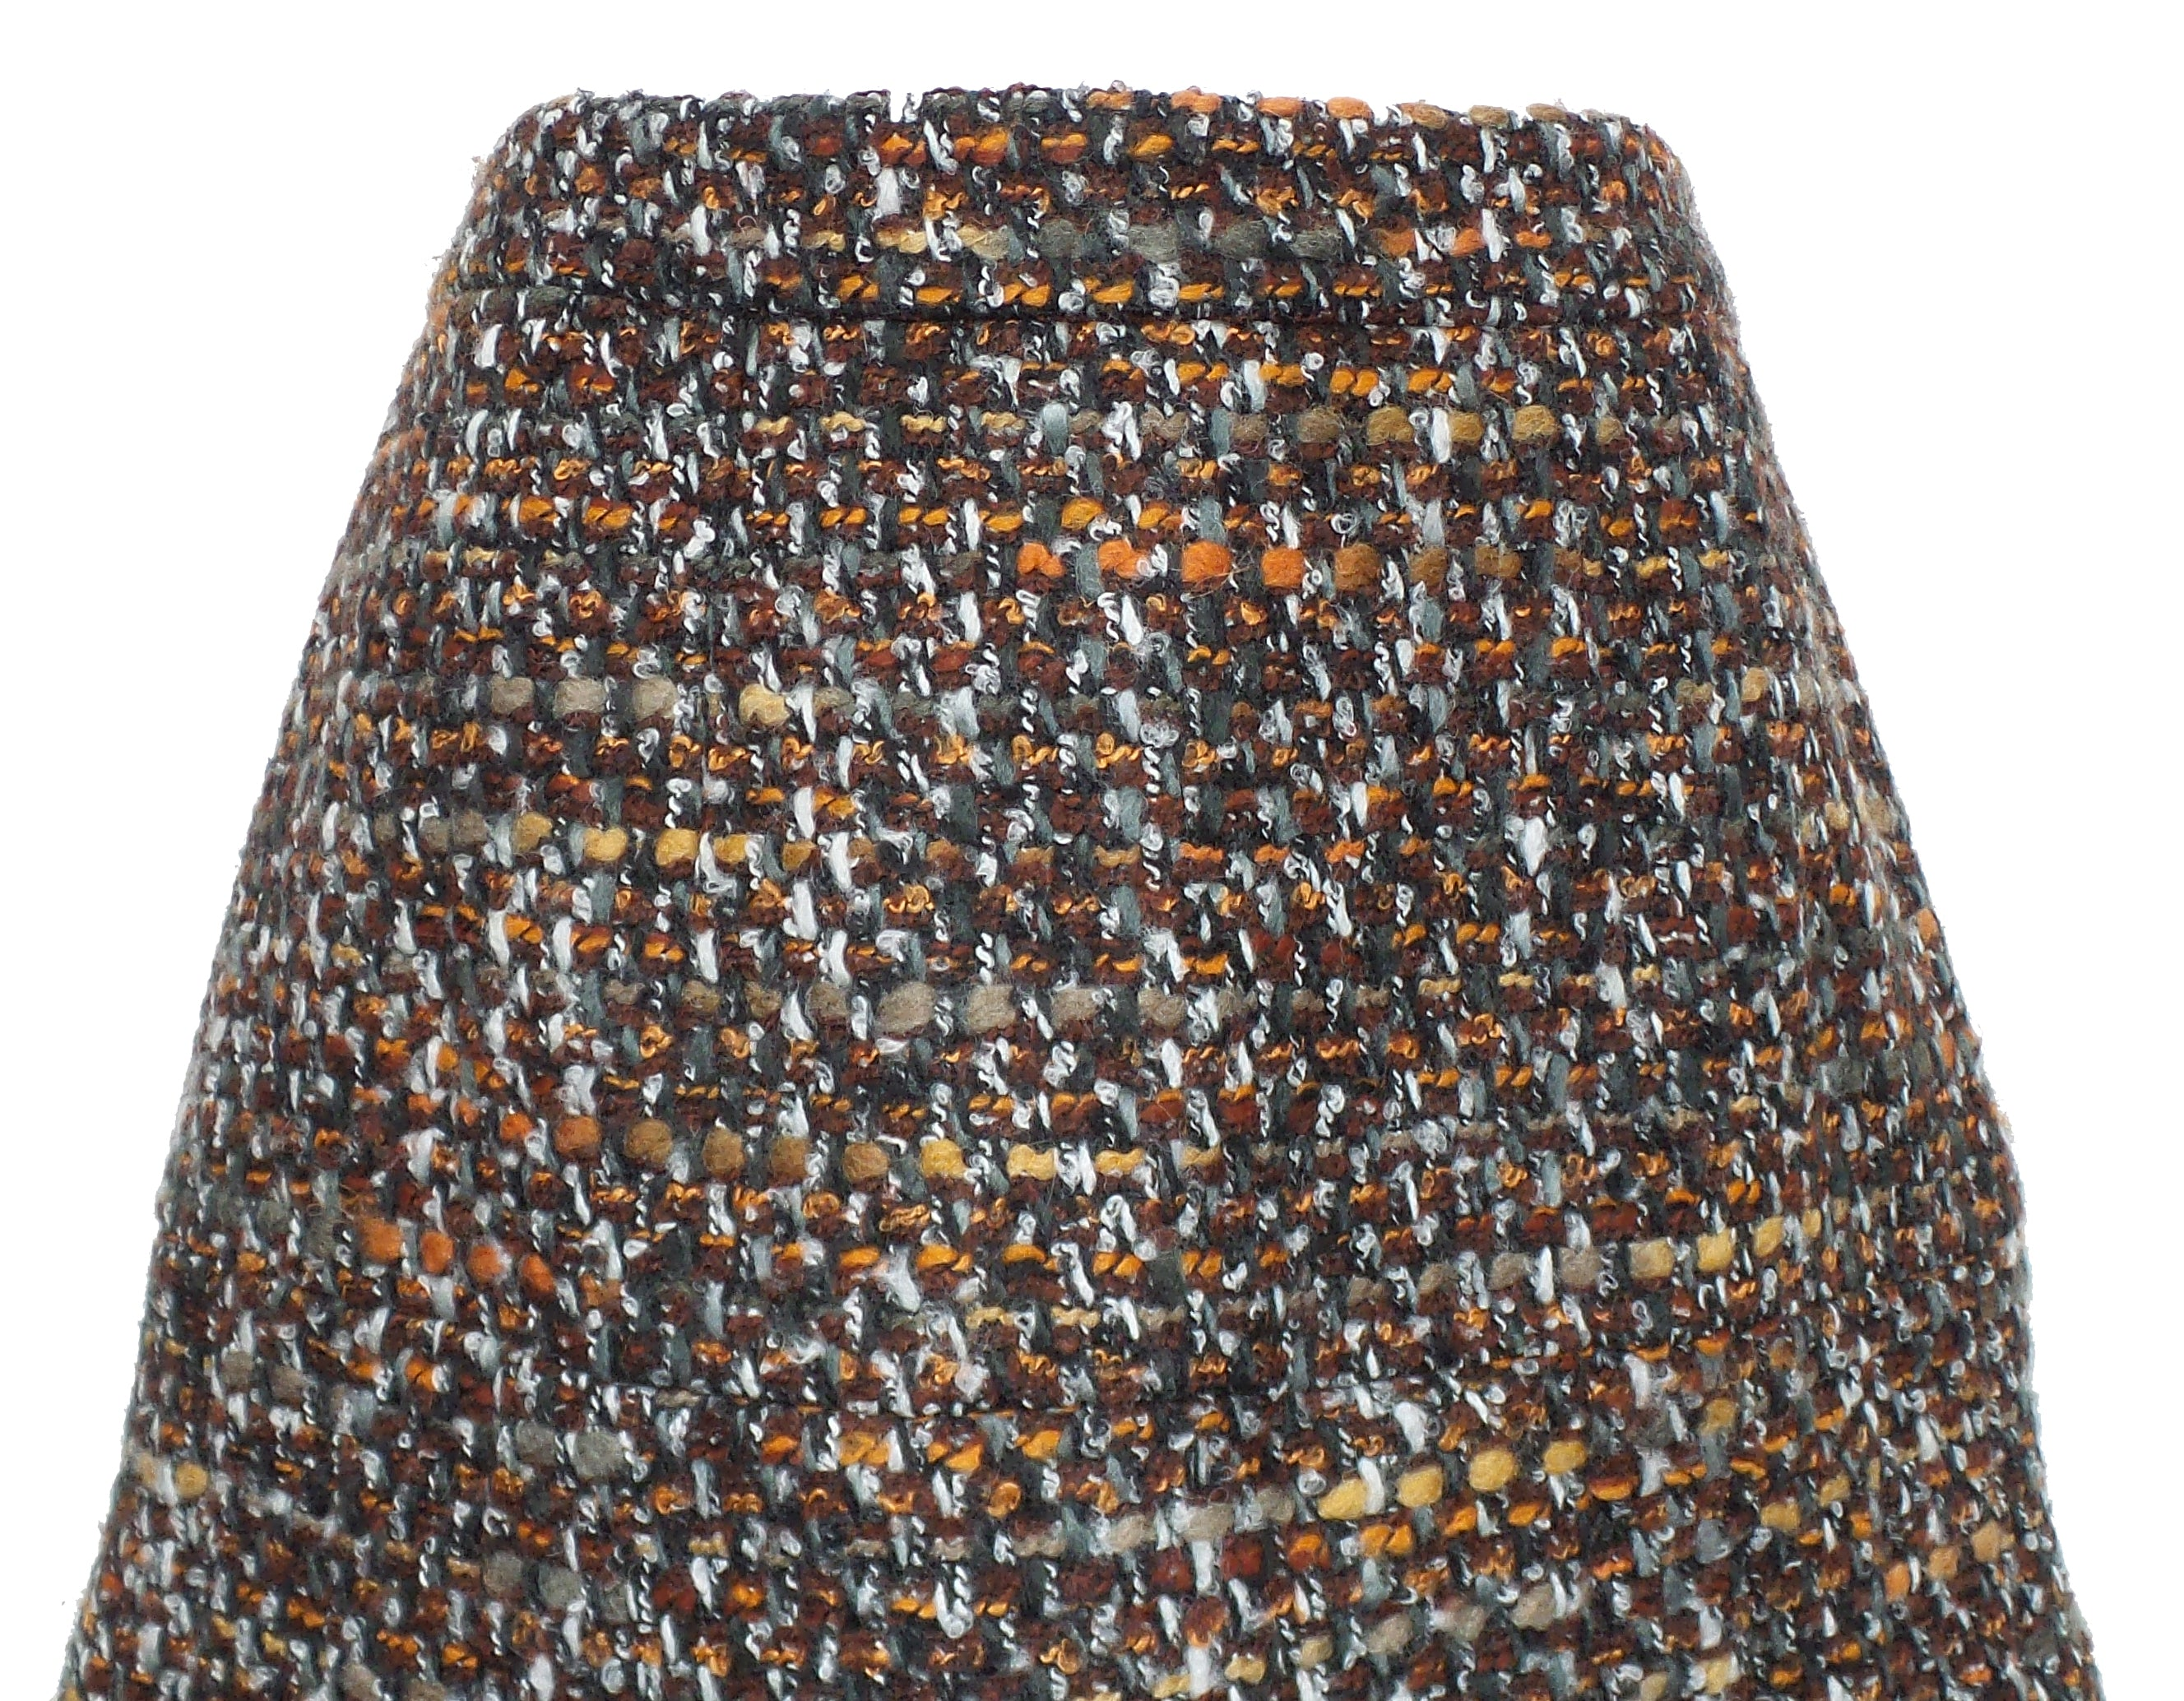 DOLCE & GABBANA Copper Brown Multi Boucle Tweed Fringe Hem Pleated Skirt 42